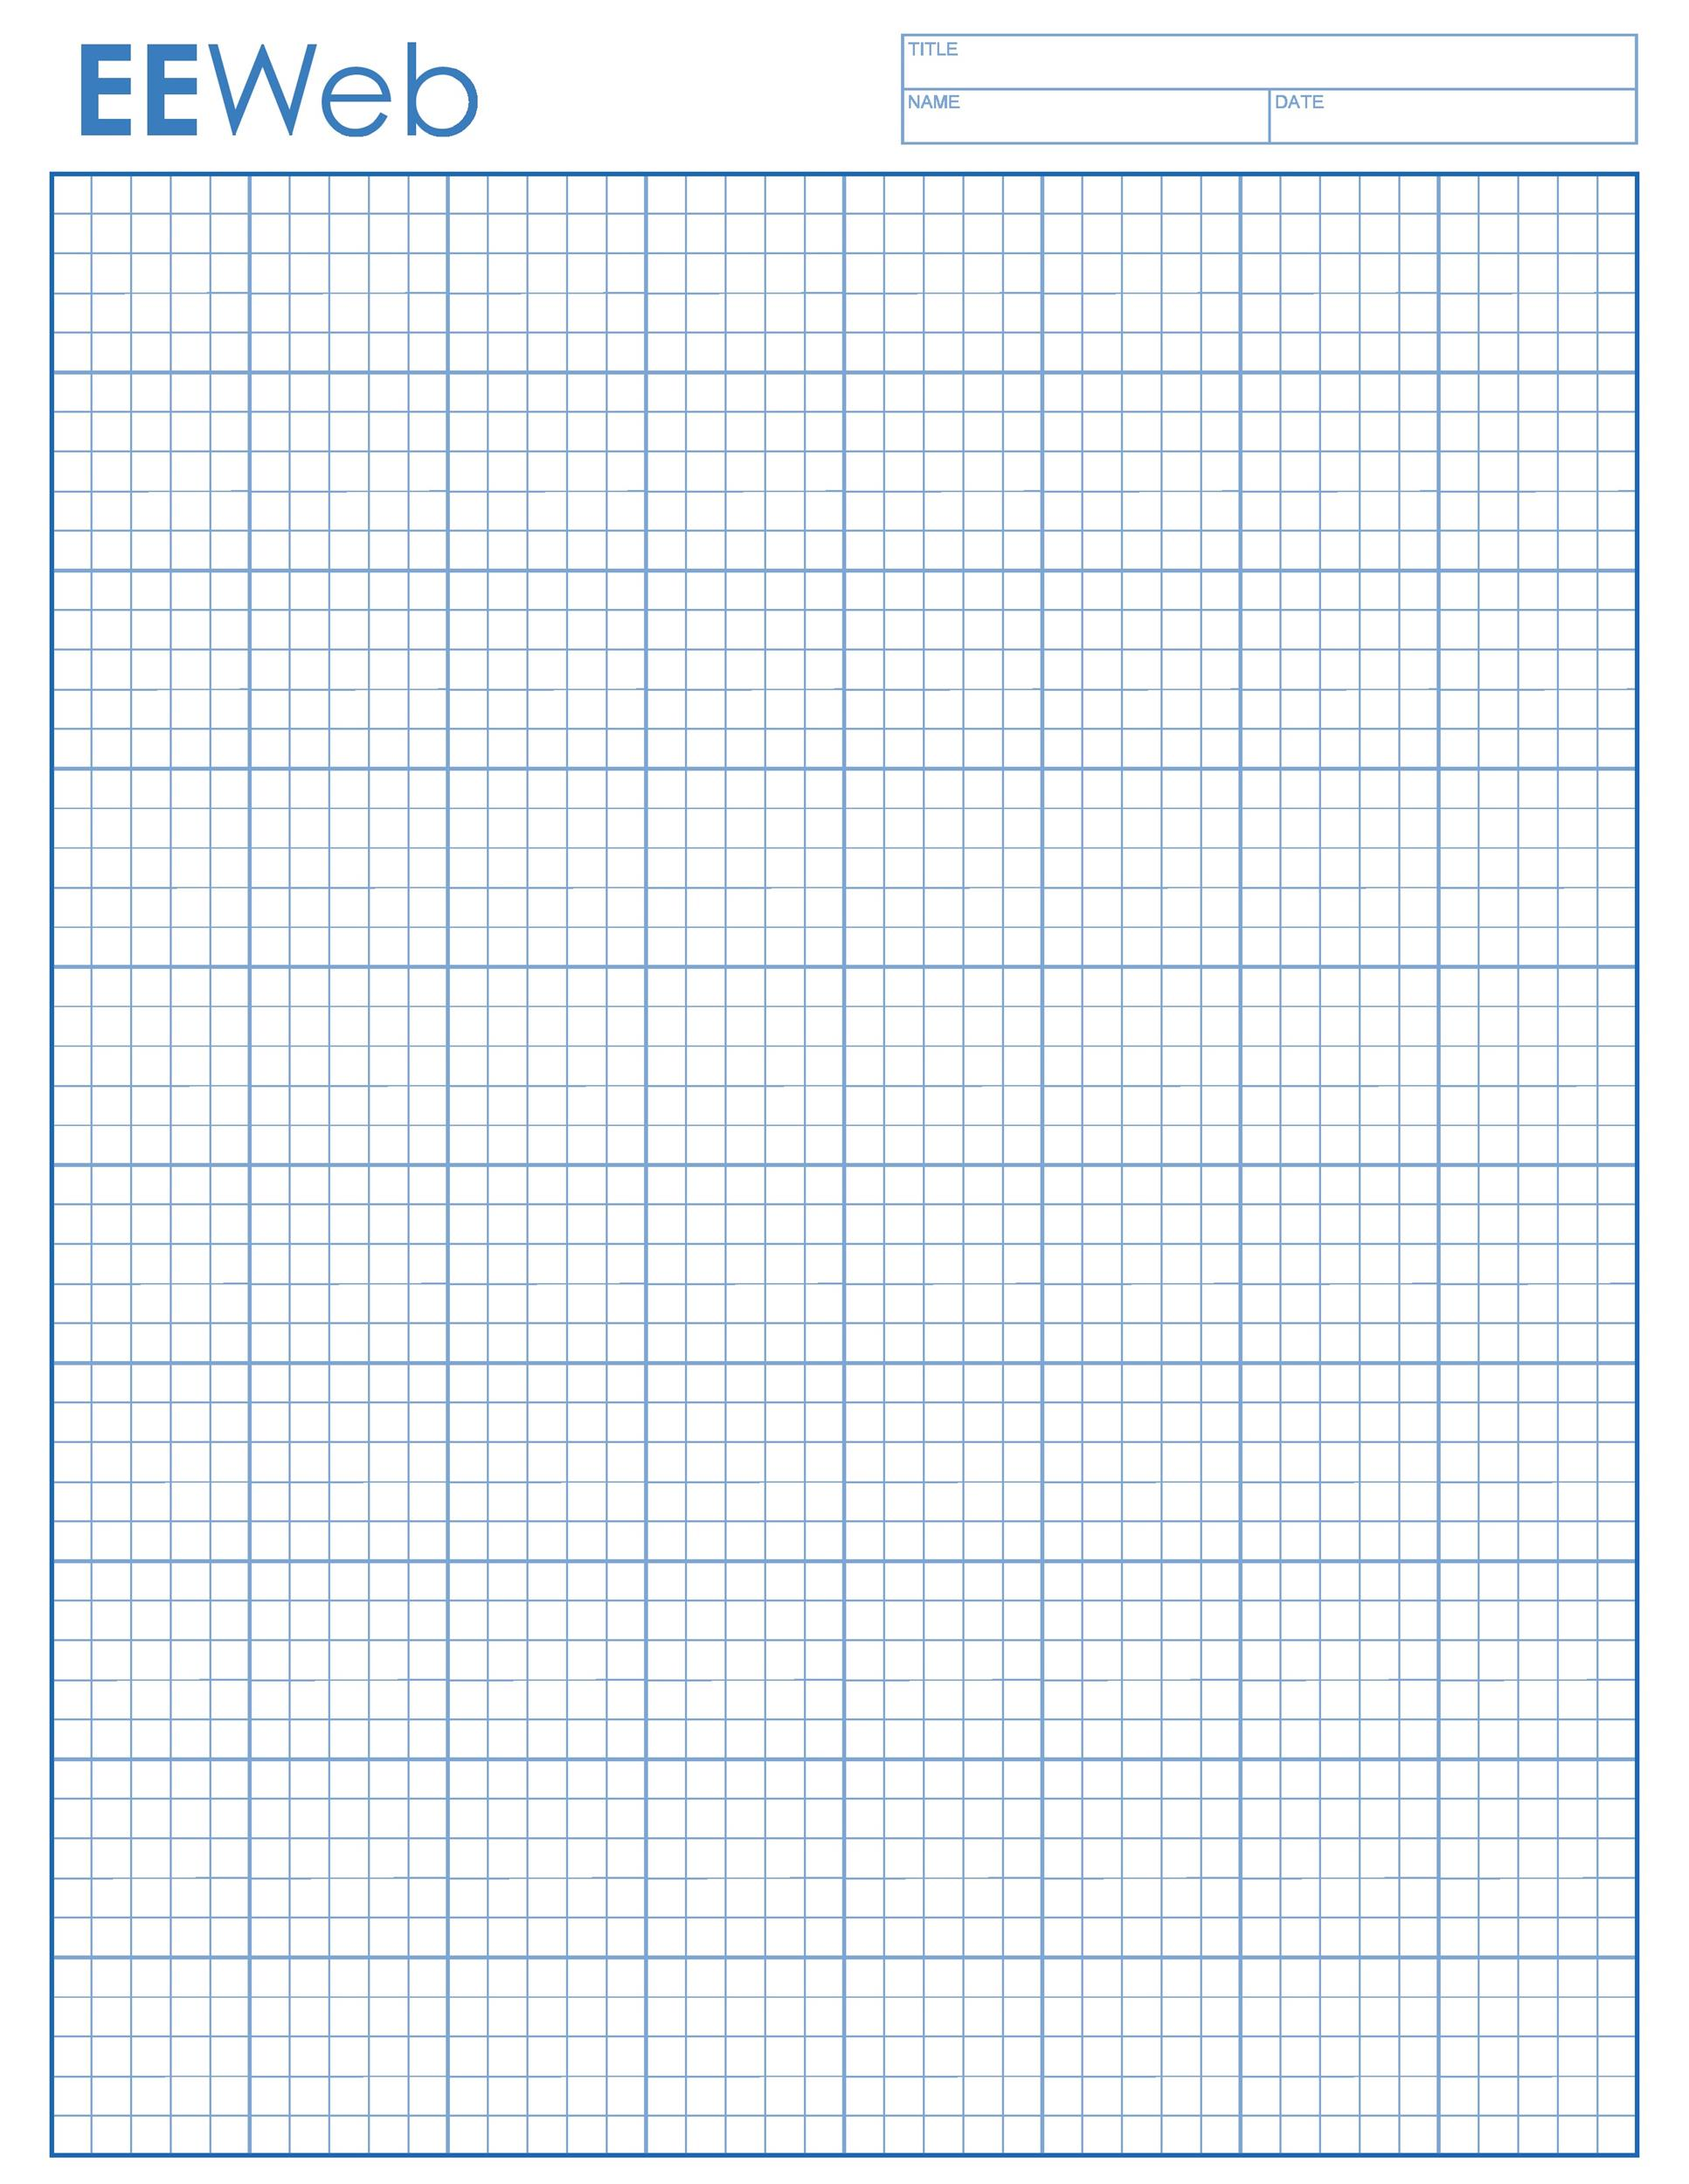 Graph paper template download boatremyeaton graph paper template download ccuart Choice Image